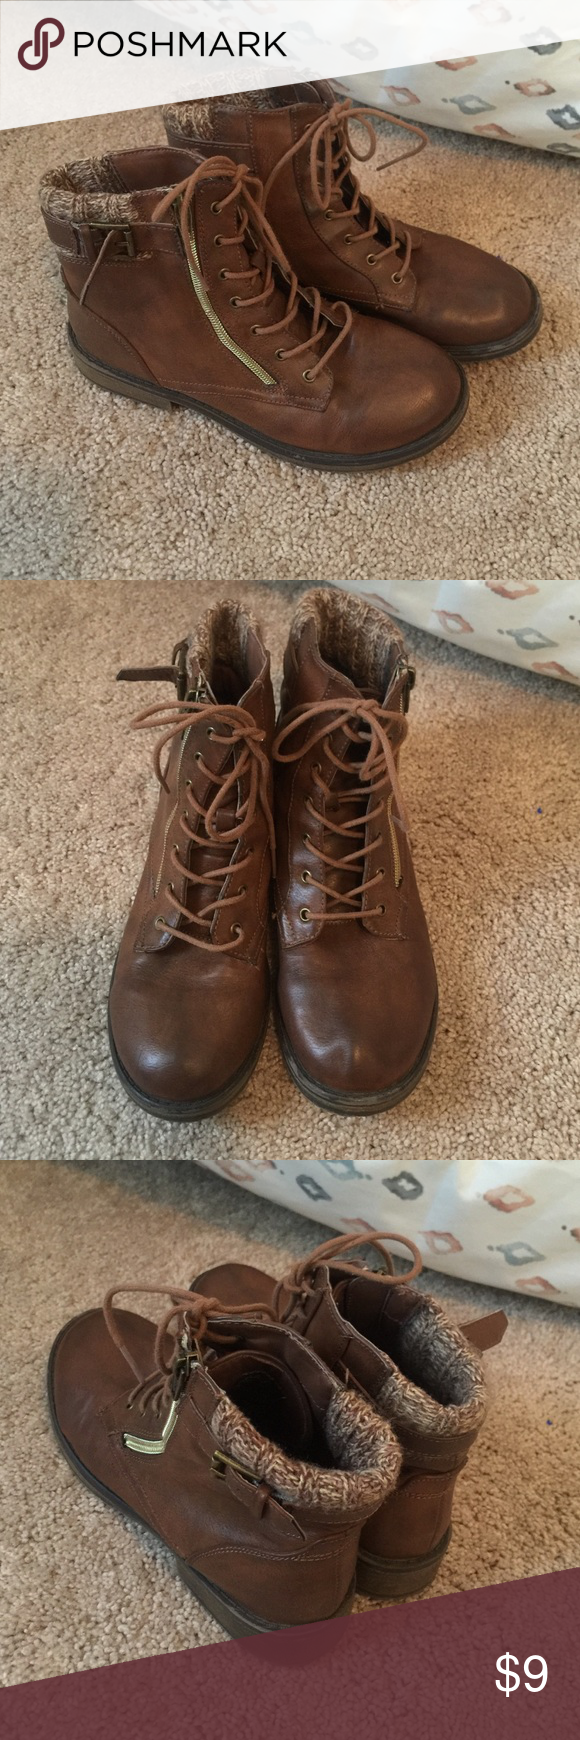 Girls Boots In good used condition. The zipper opens for easy on/off. Left toe appears to have indent from storage. Sweater detail on back of boot opening. Any questions, please ask! Cherokee Shoes Boots